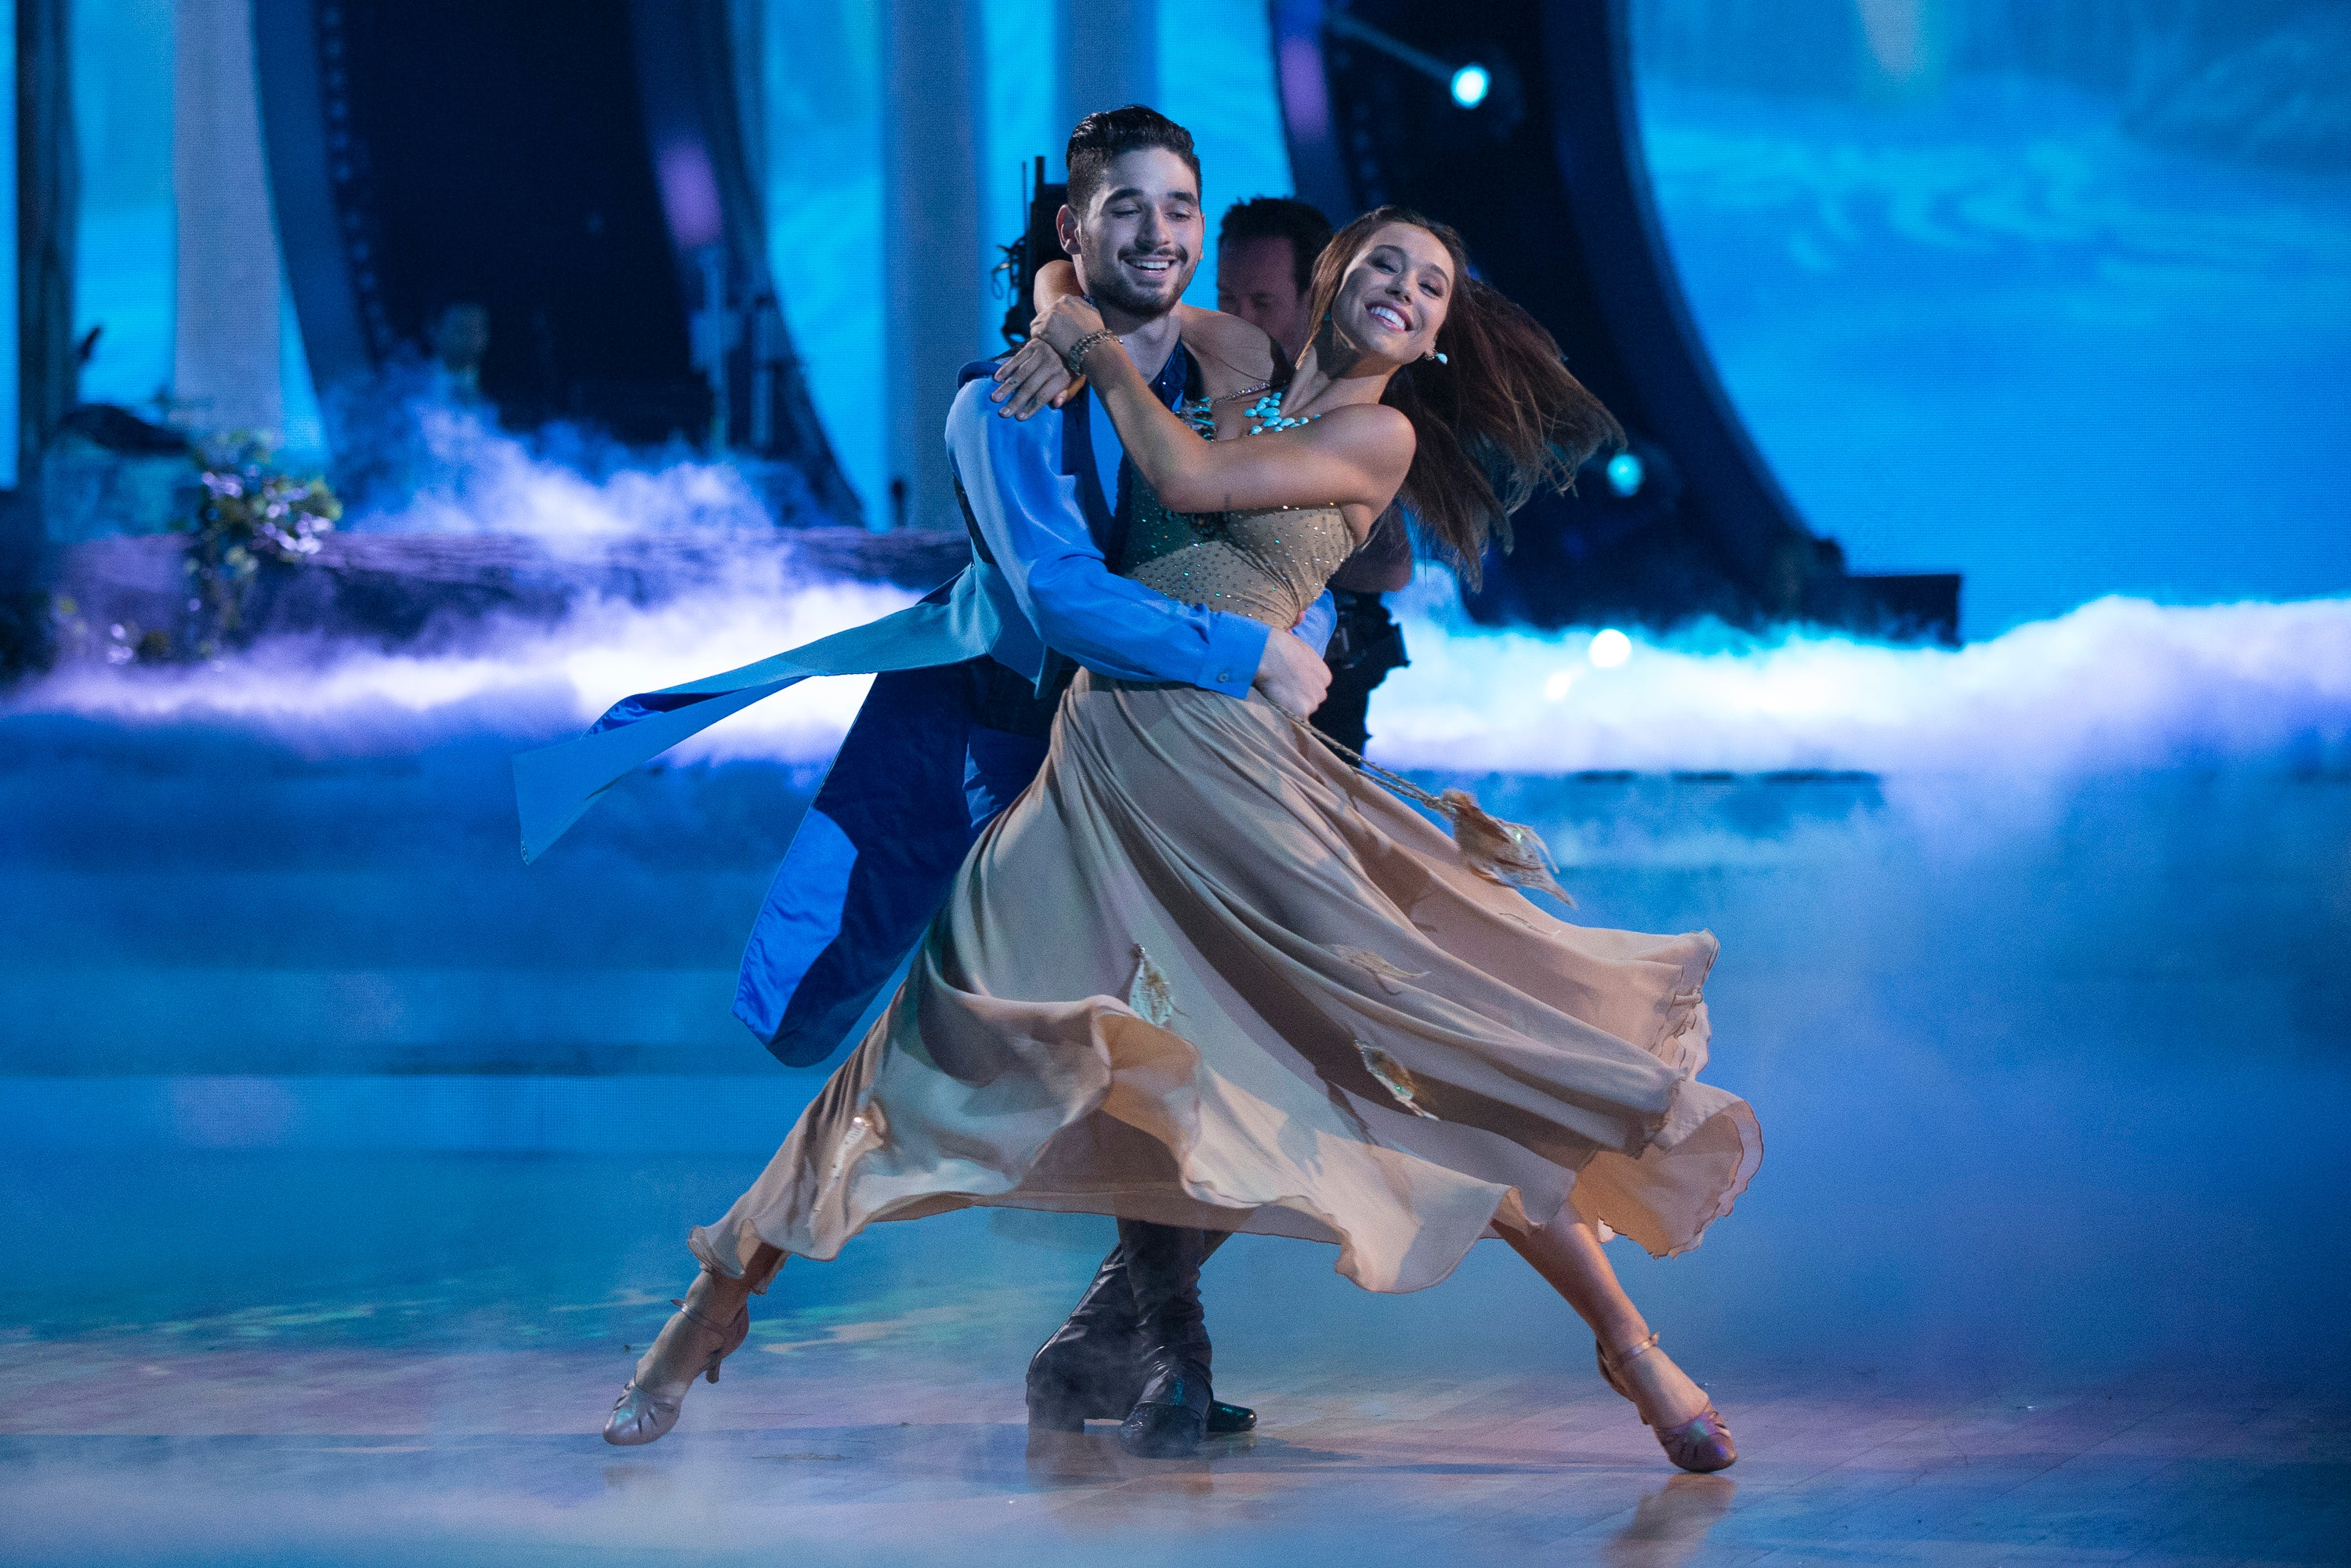 Who is really dating on dancing with the stars